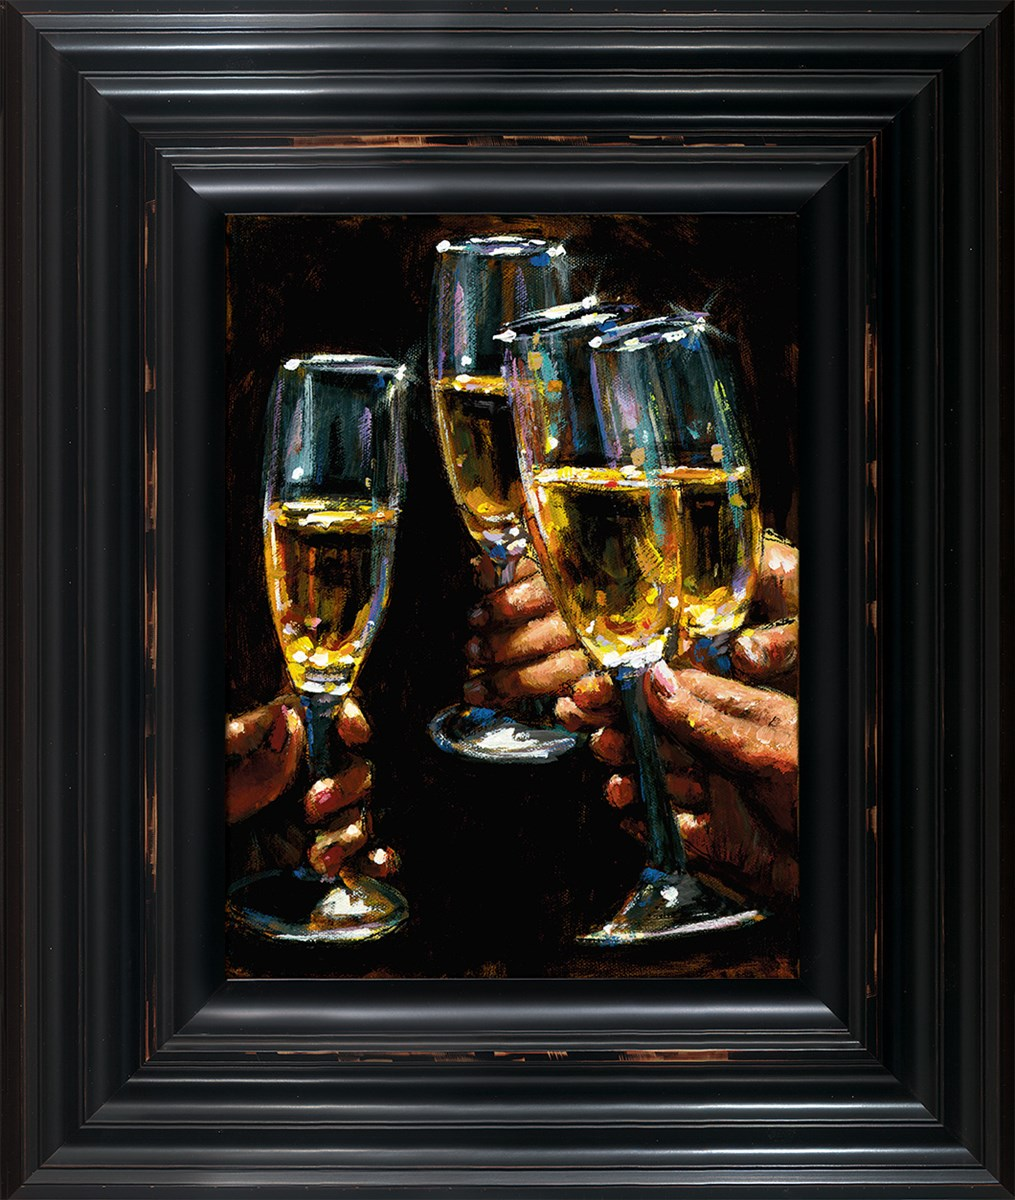 Brindis Con Champagne - Vertical framed by Fabian Perez